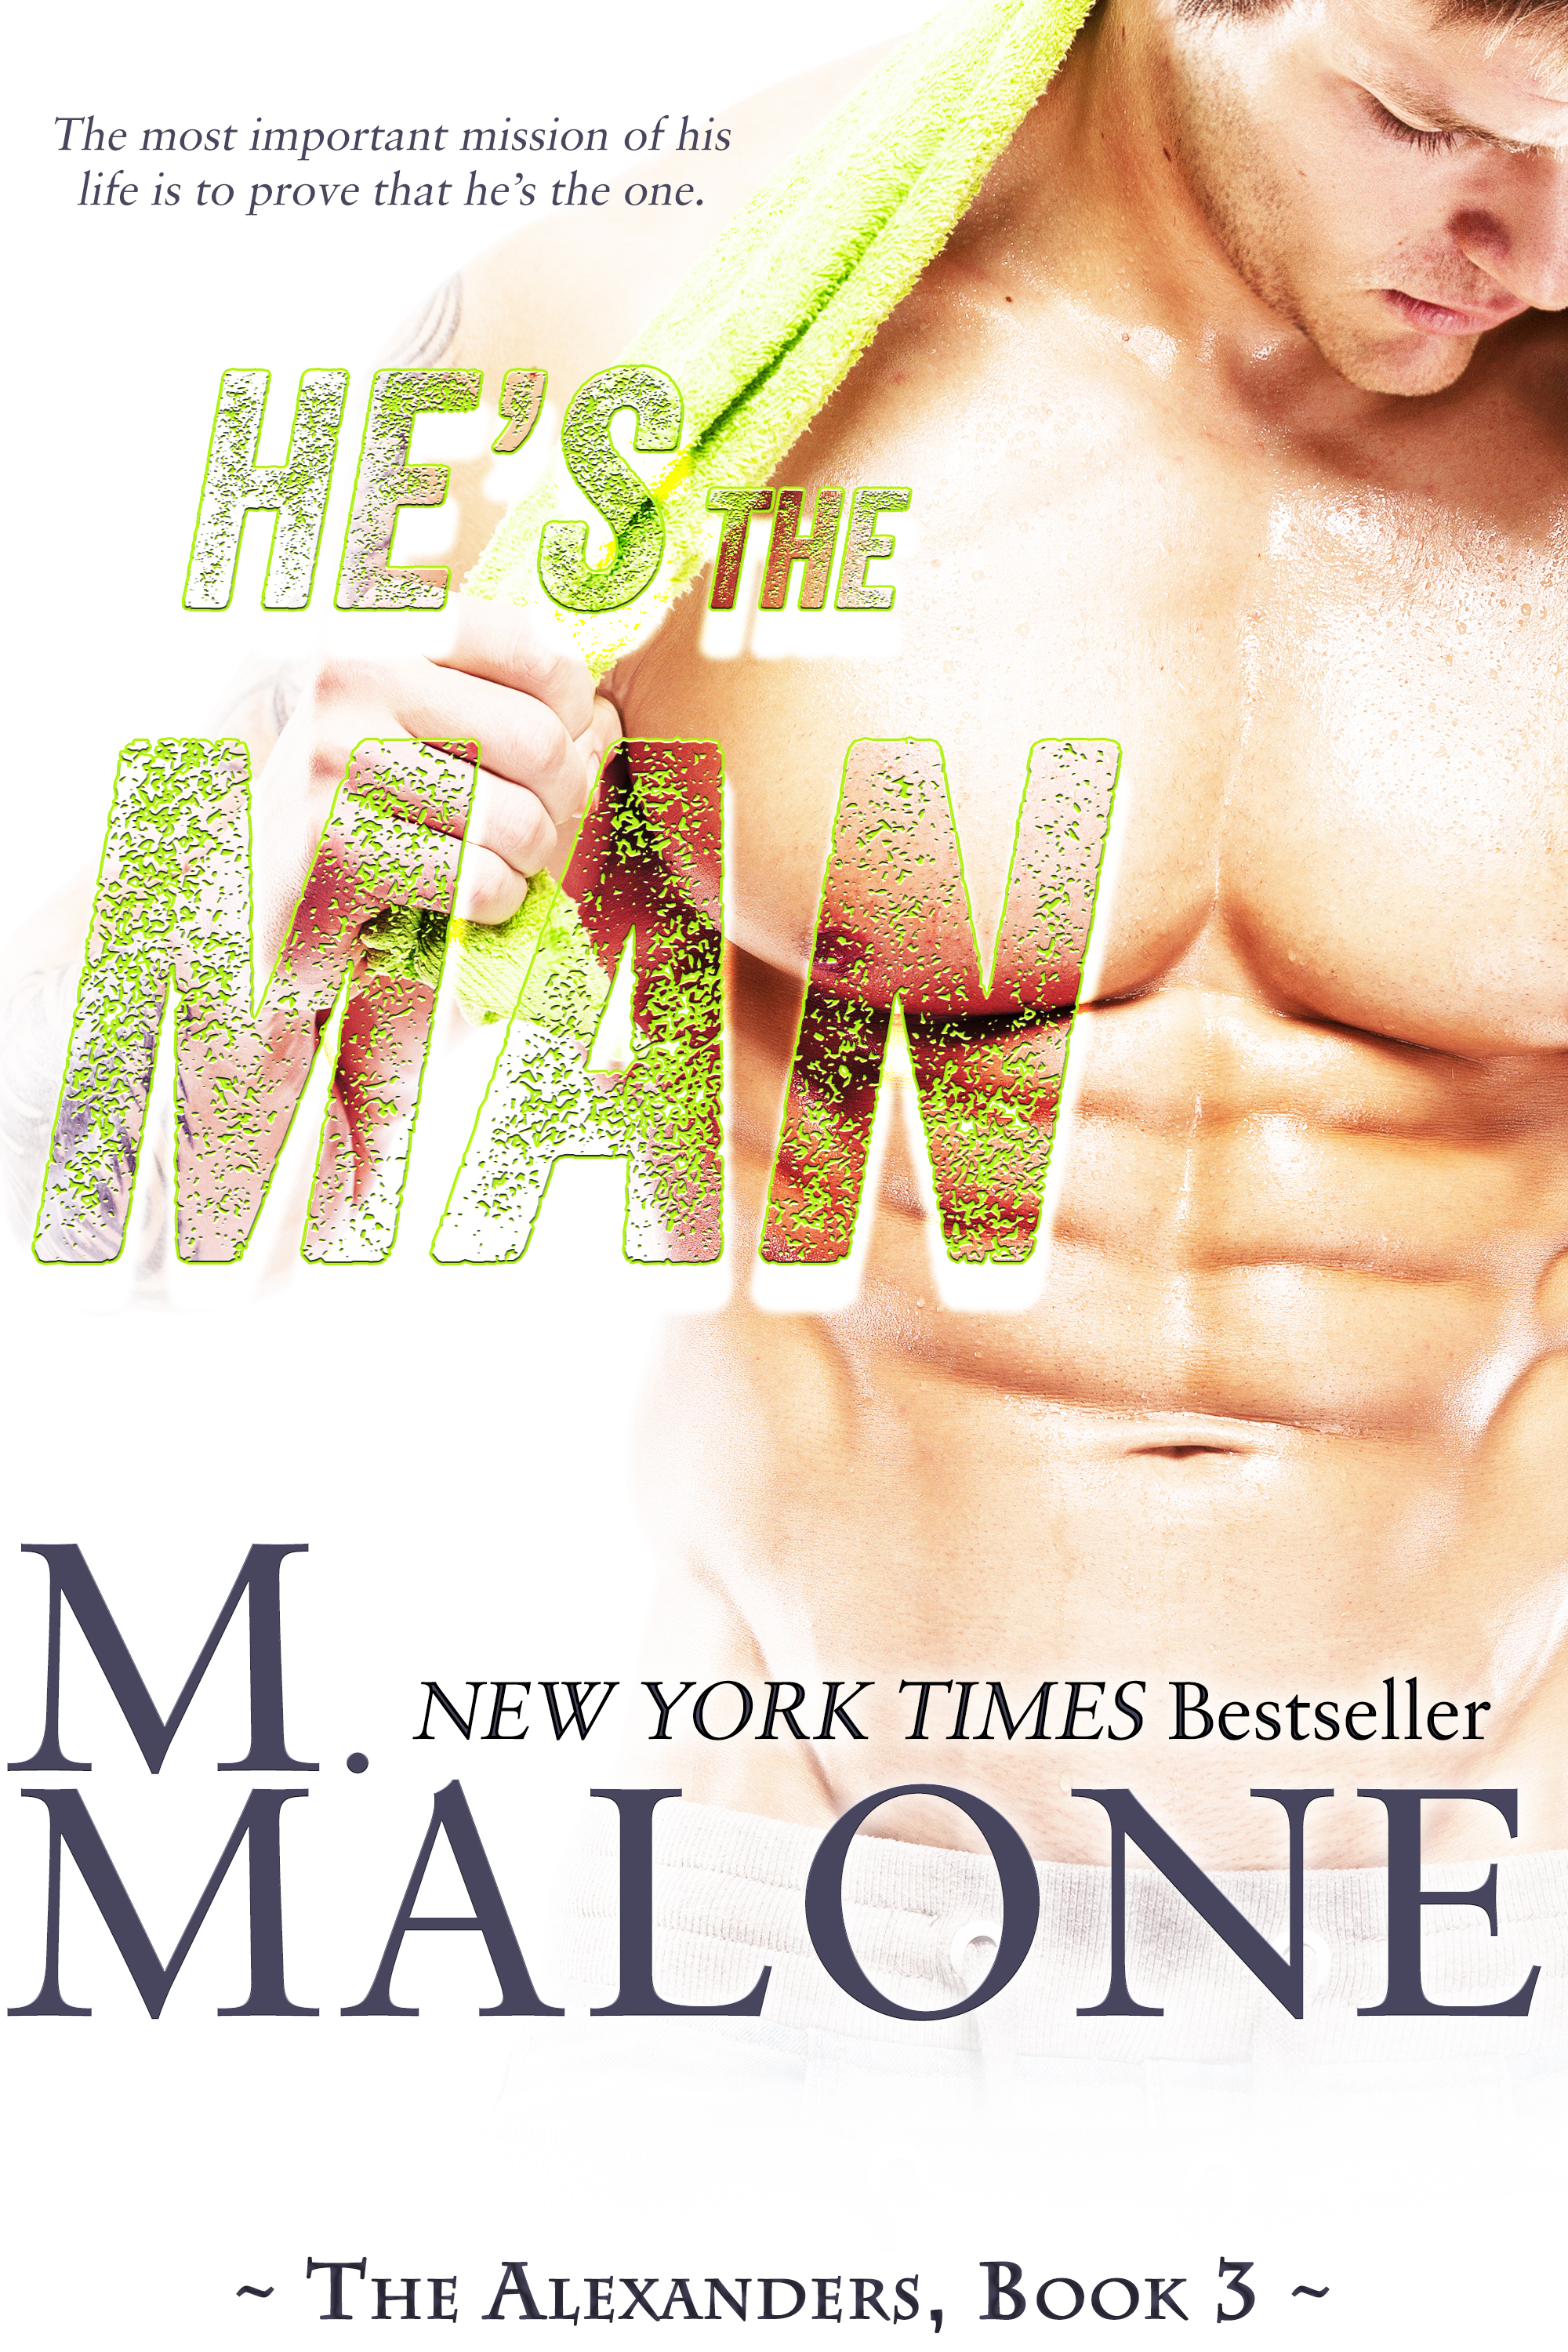 M. Malone - He's the Man